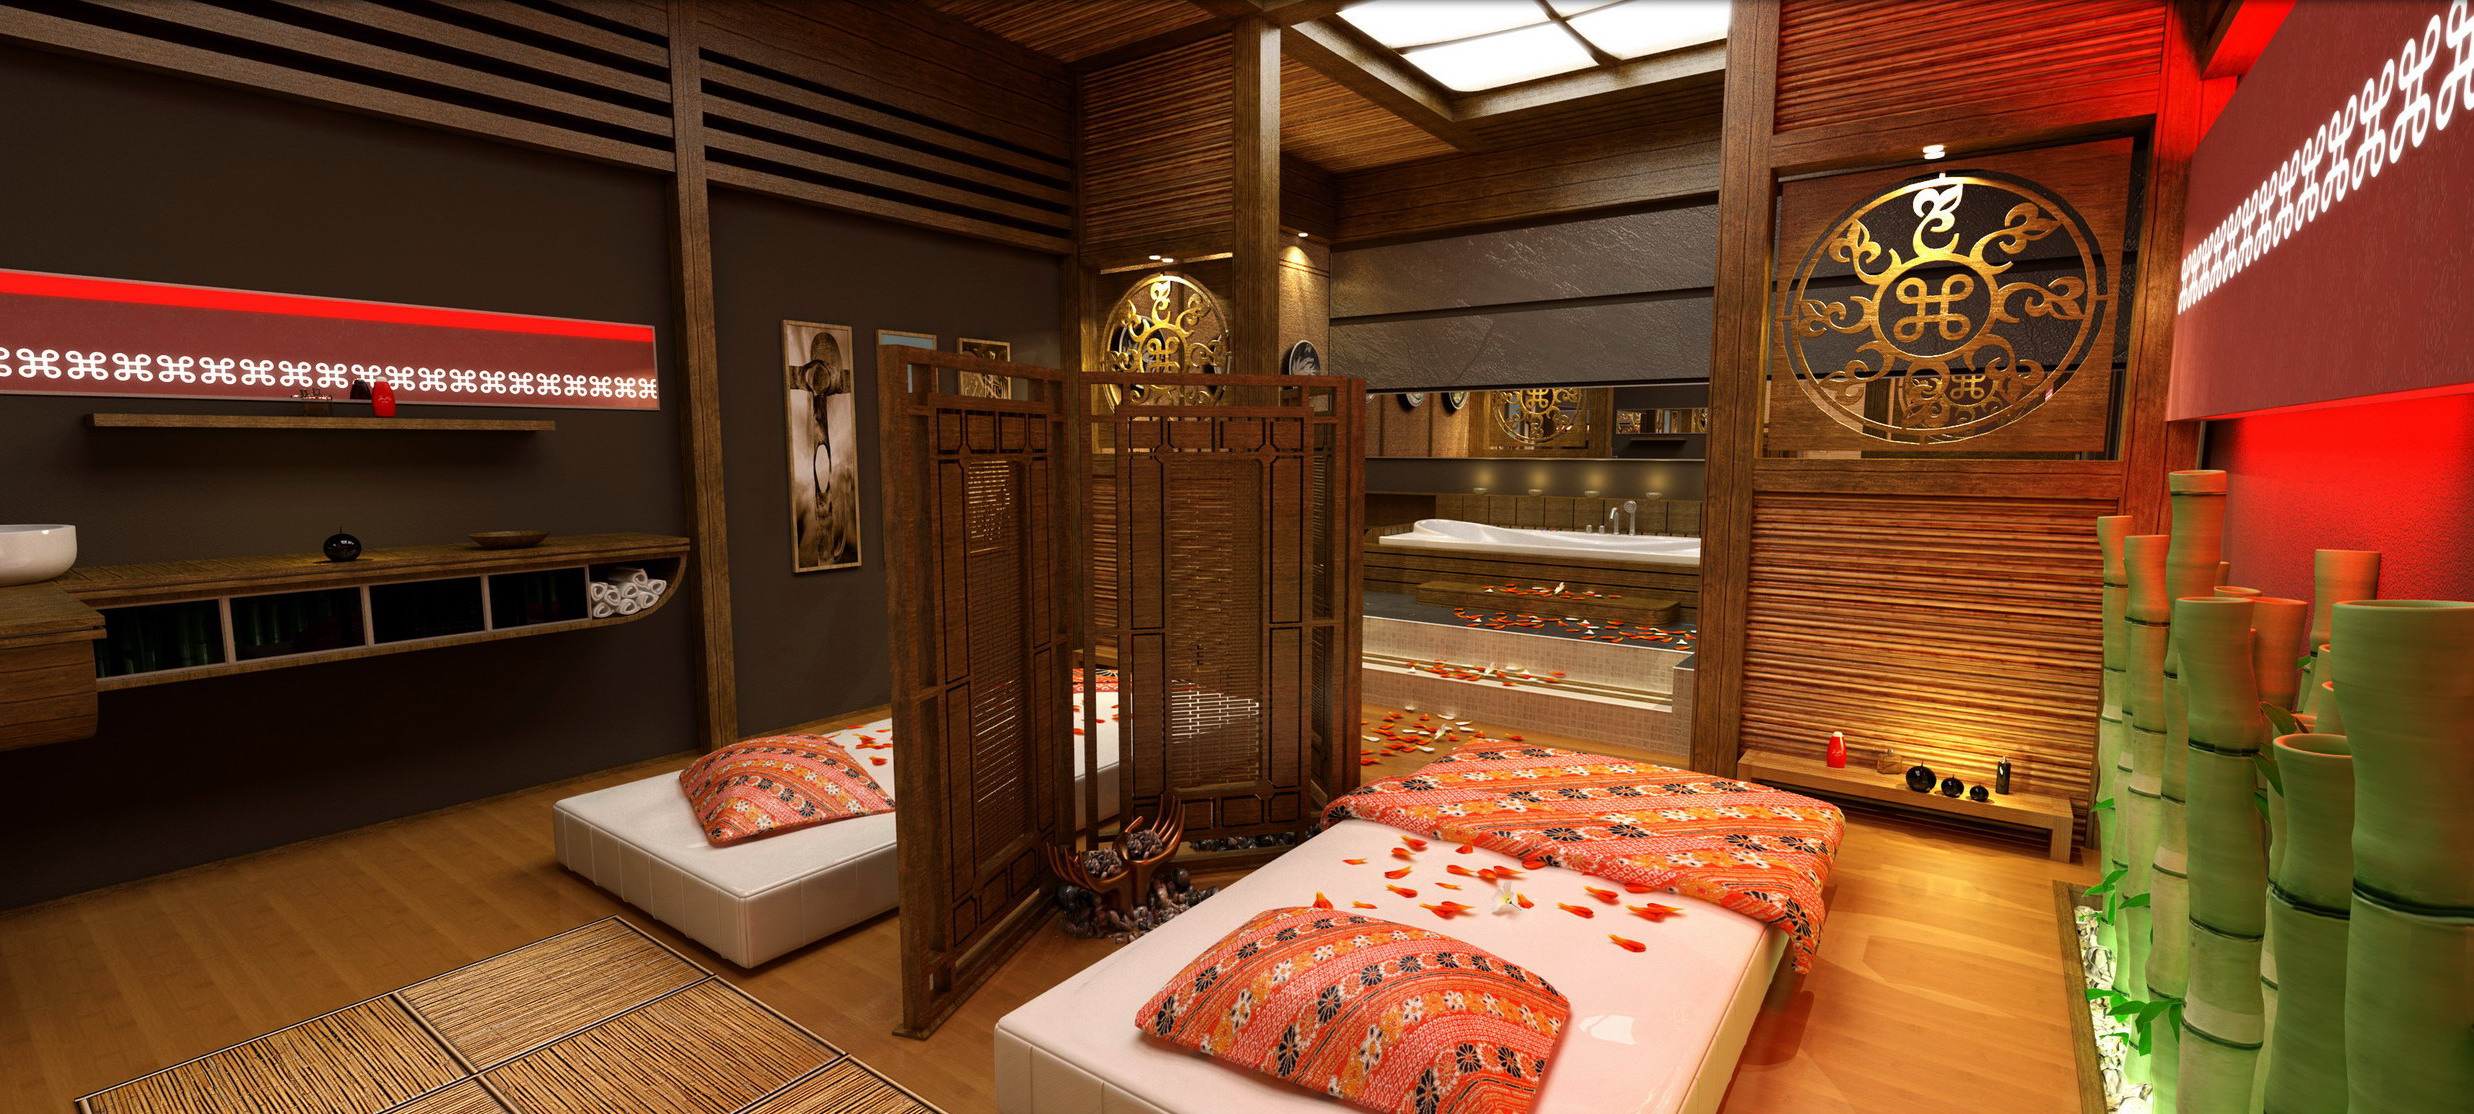 private spa rendering angled massage table view